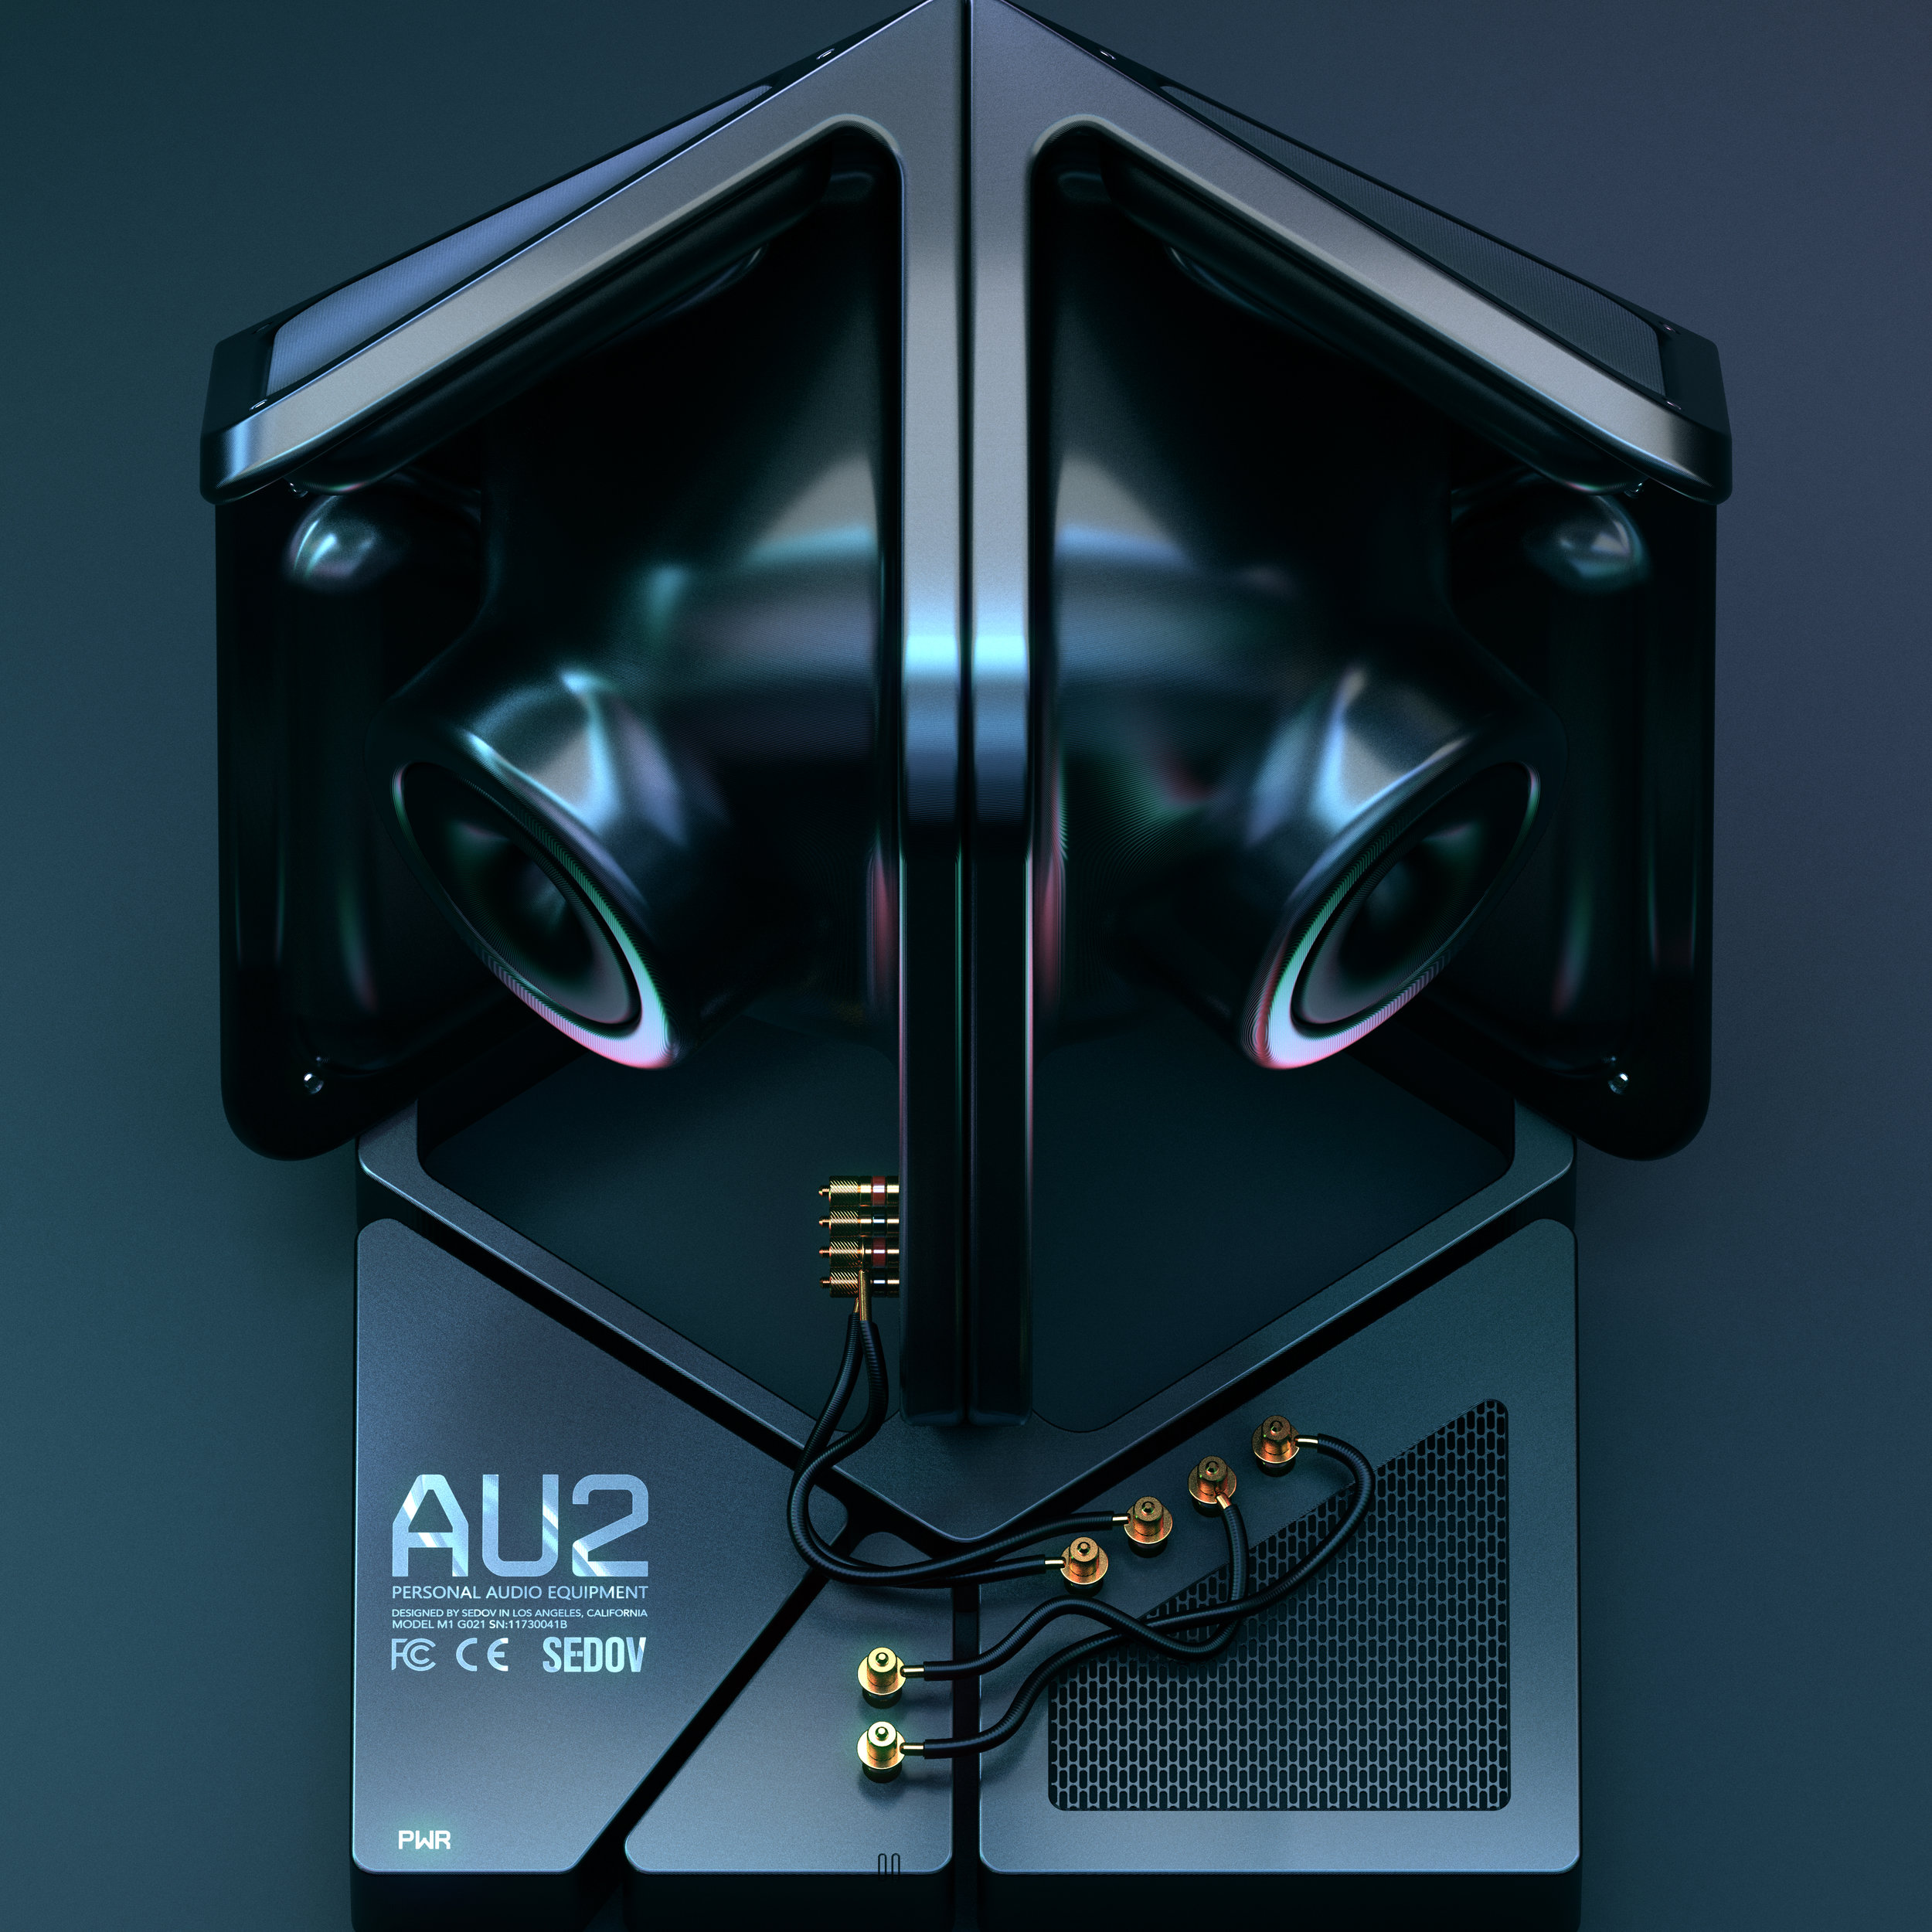 AU2_SpeakerSystem.v02.04.jpg